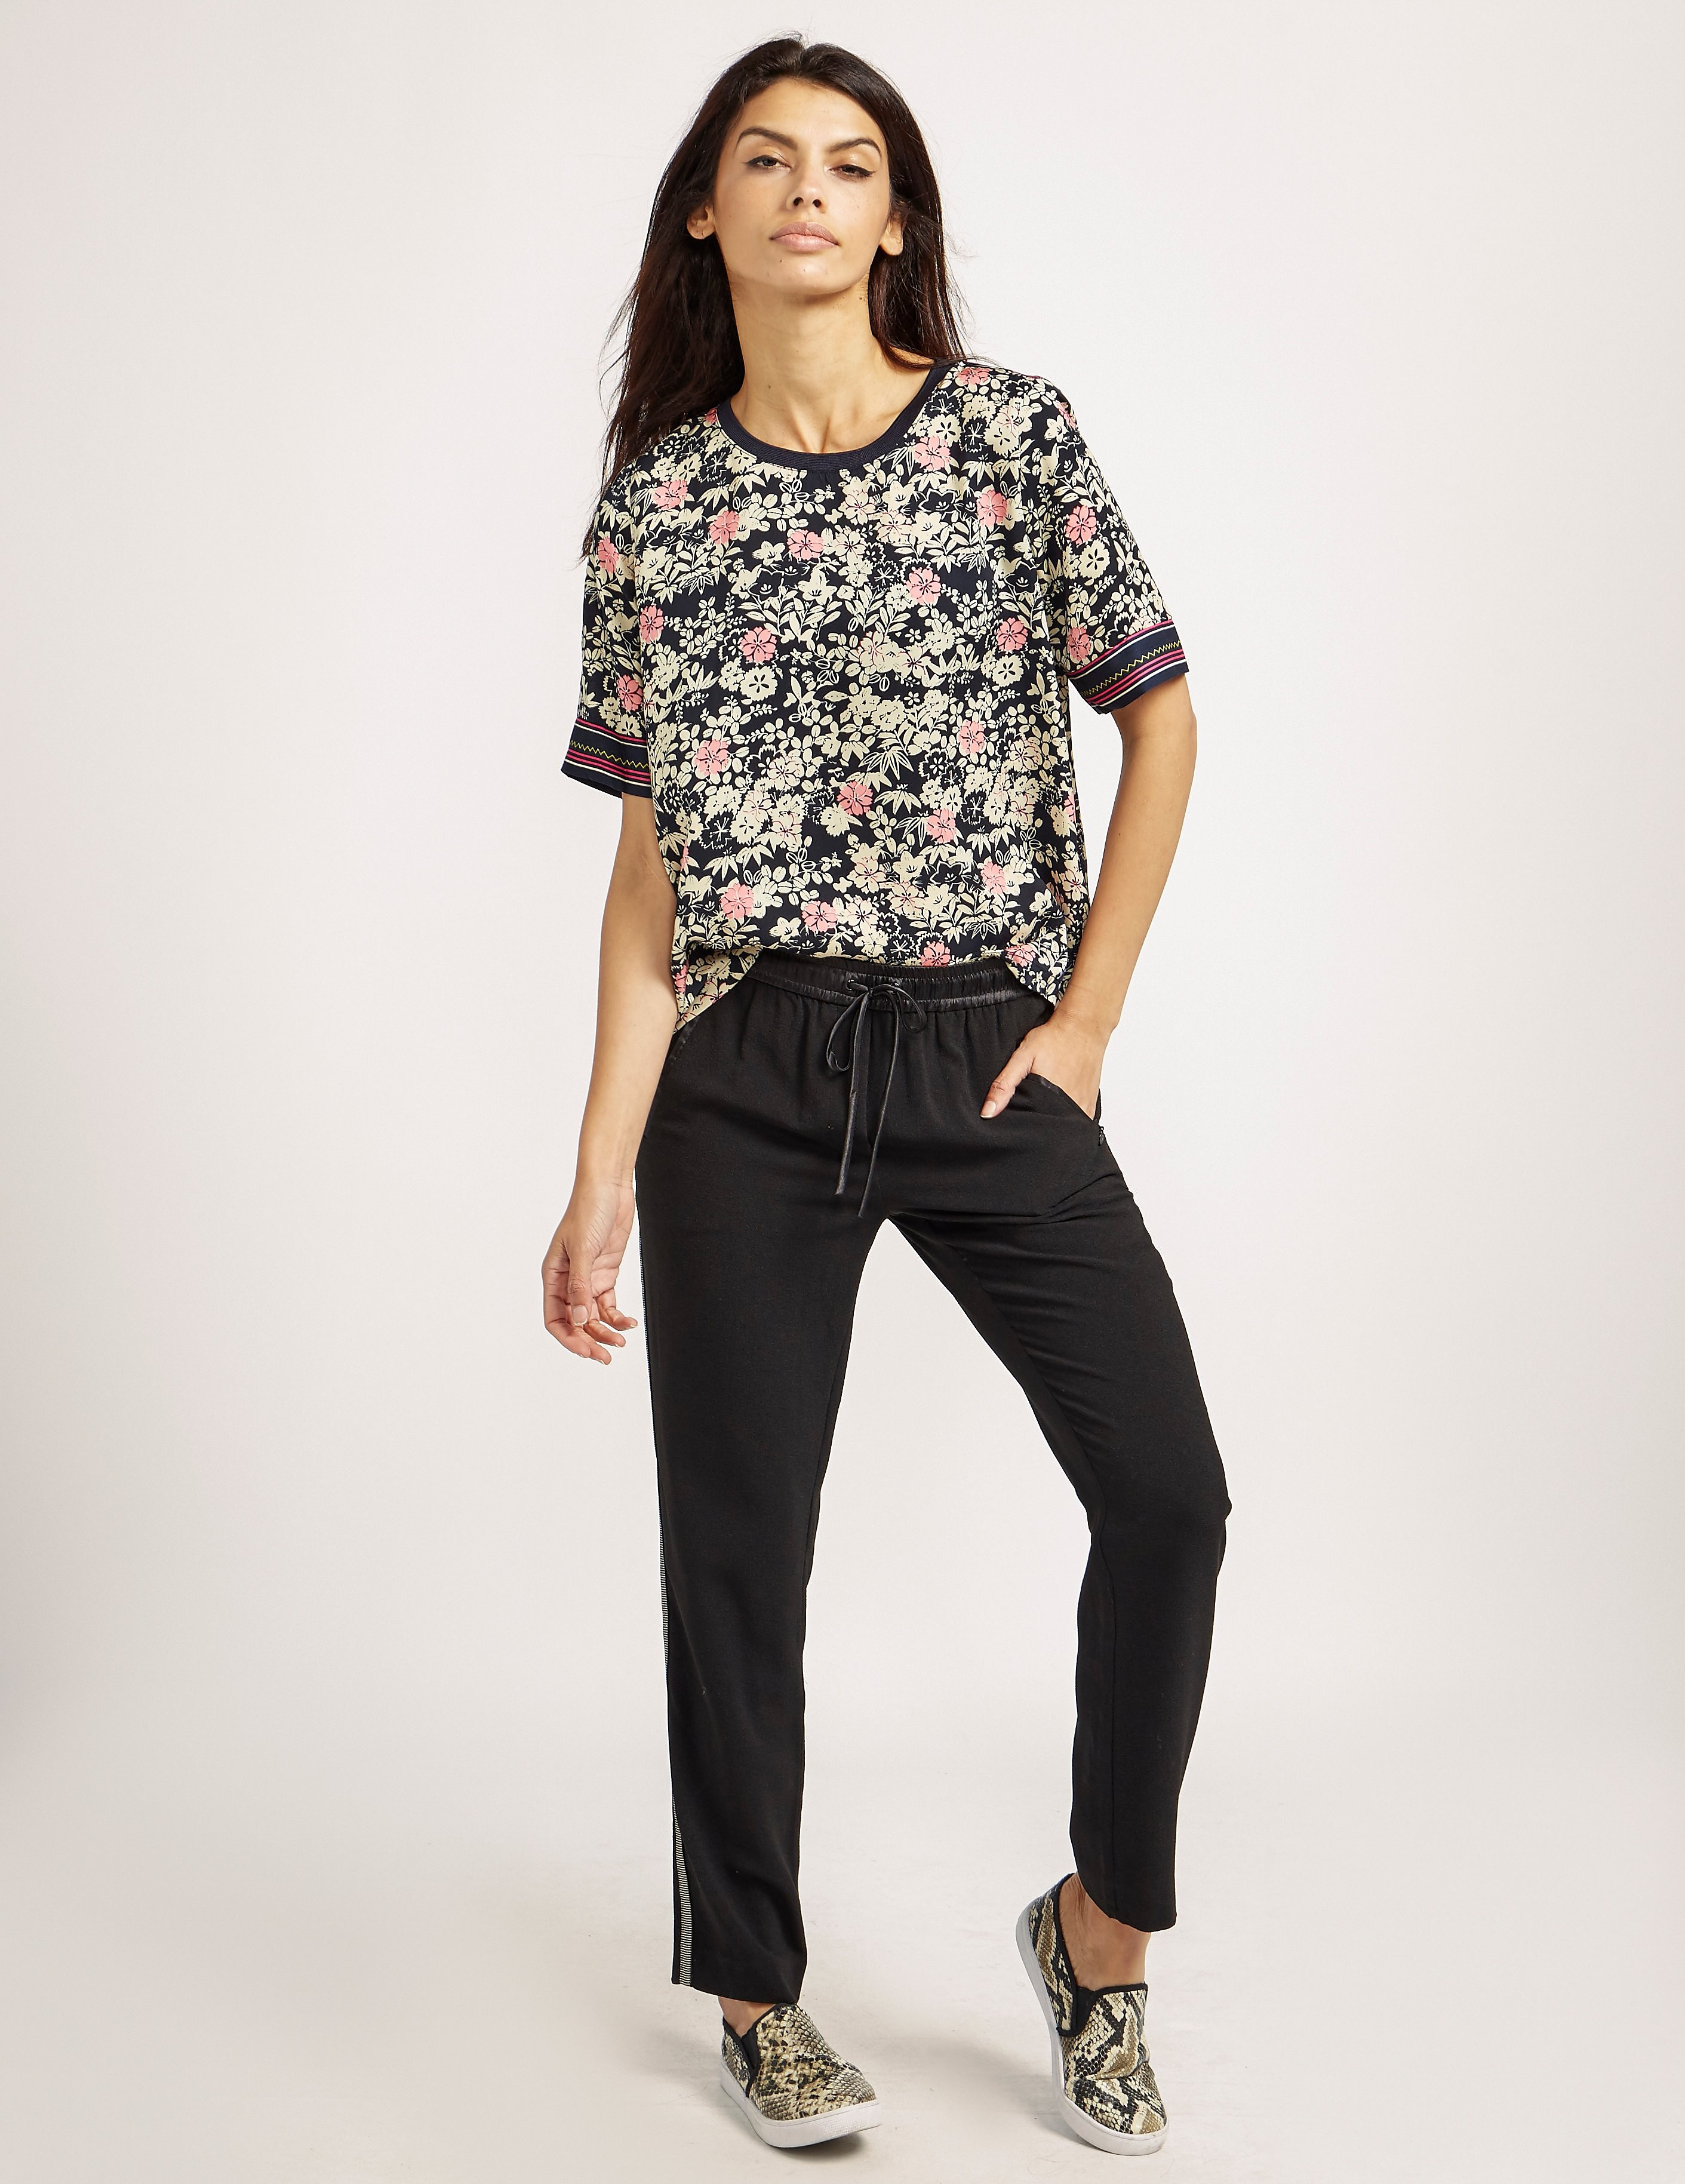 Maison Scotch Printed Top